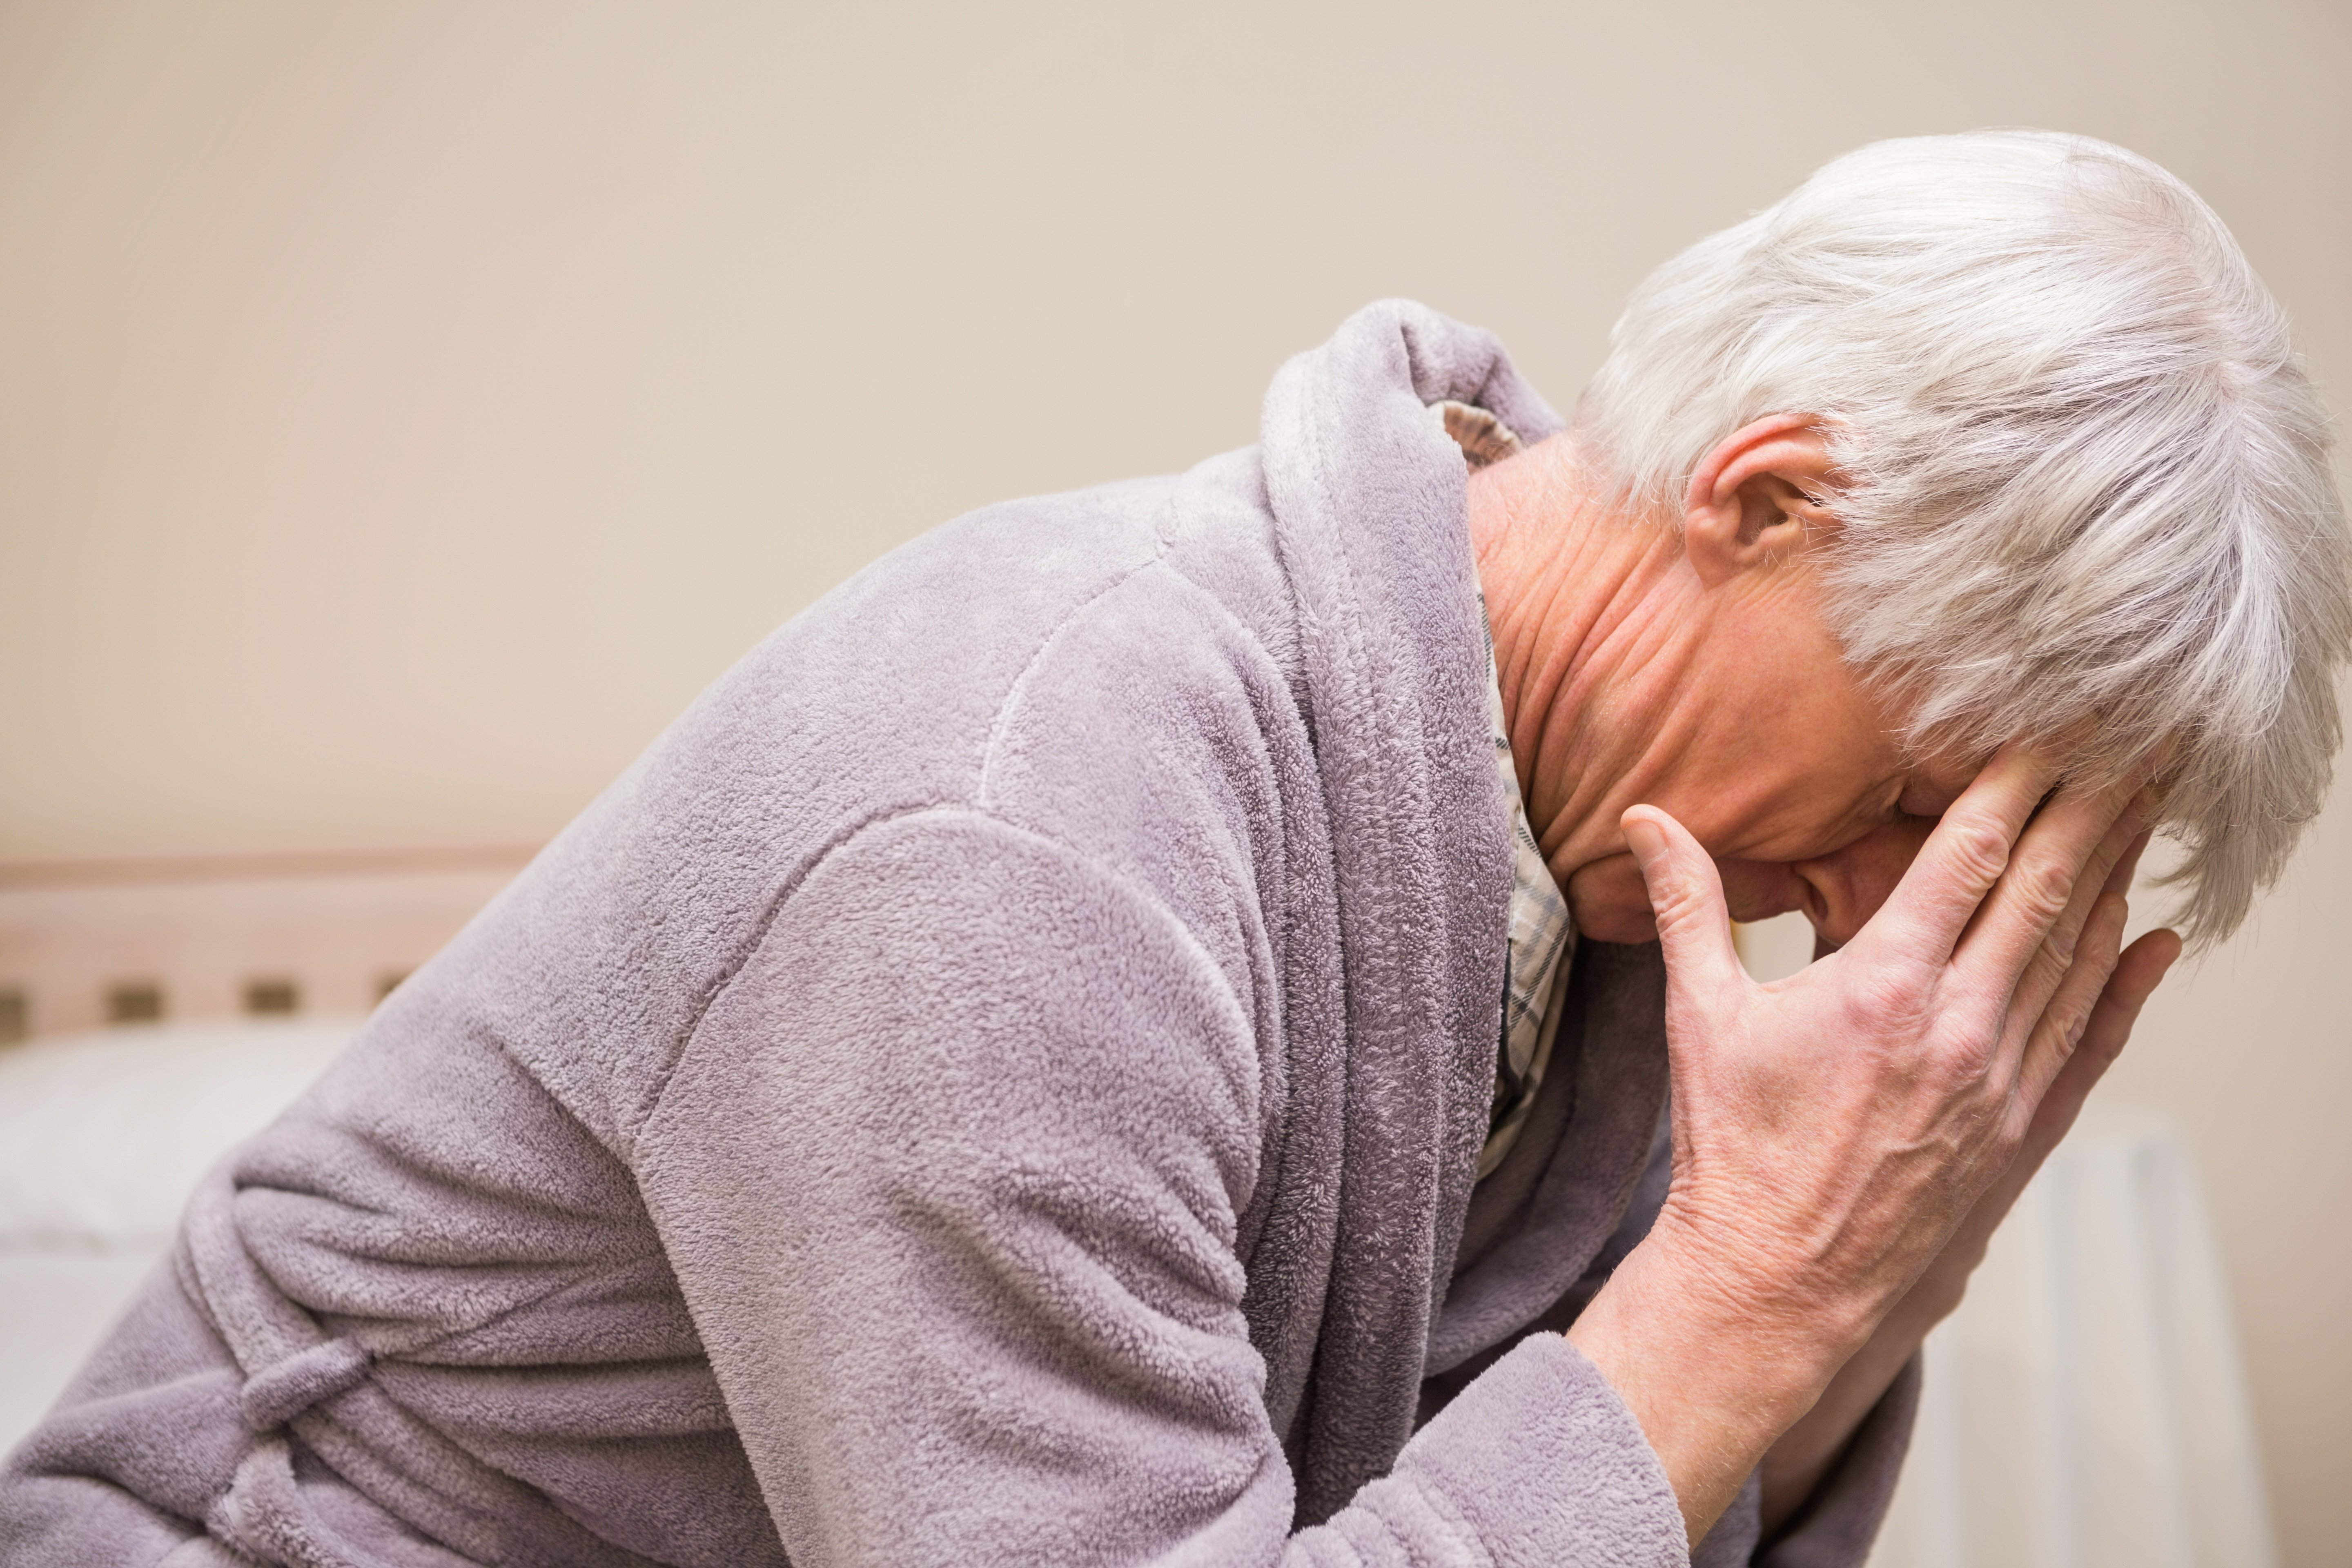 Urinary Tract Infections Can Be Very Serious for Seniors